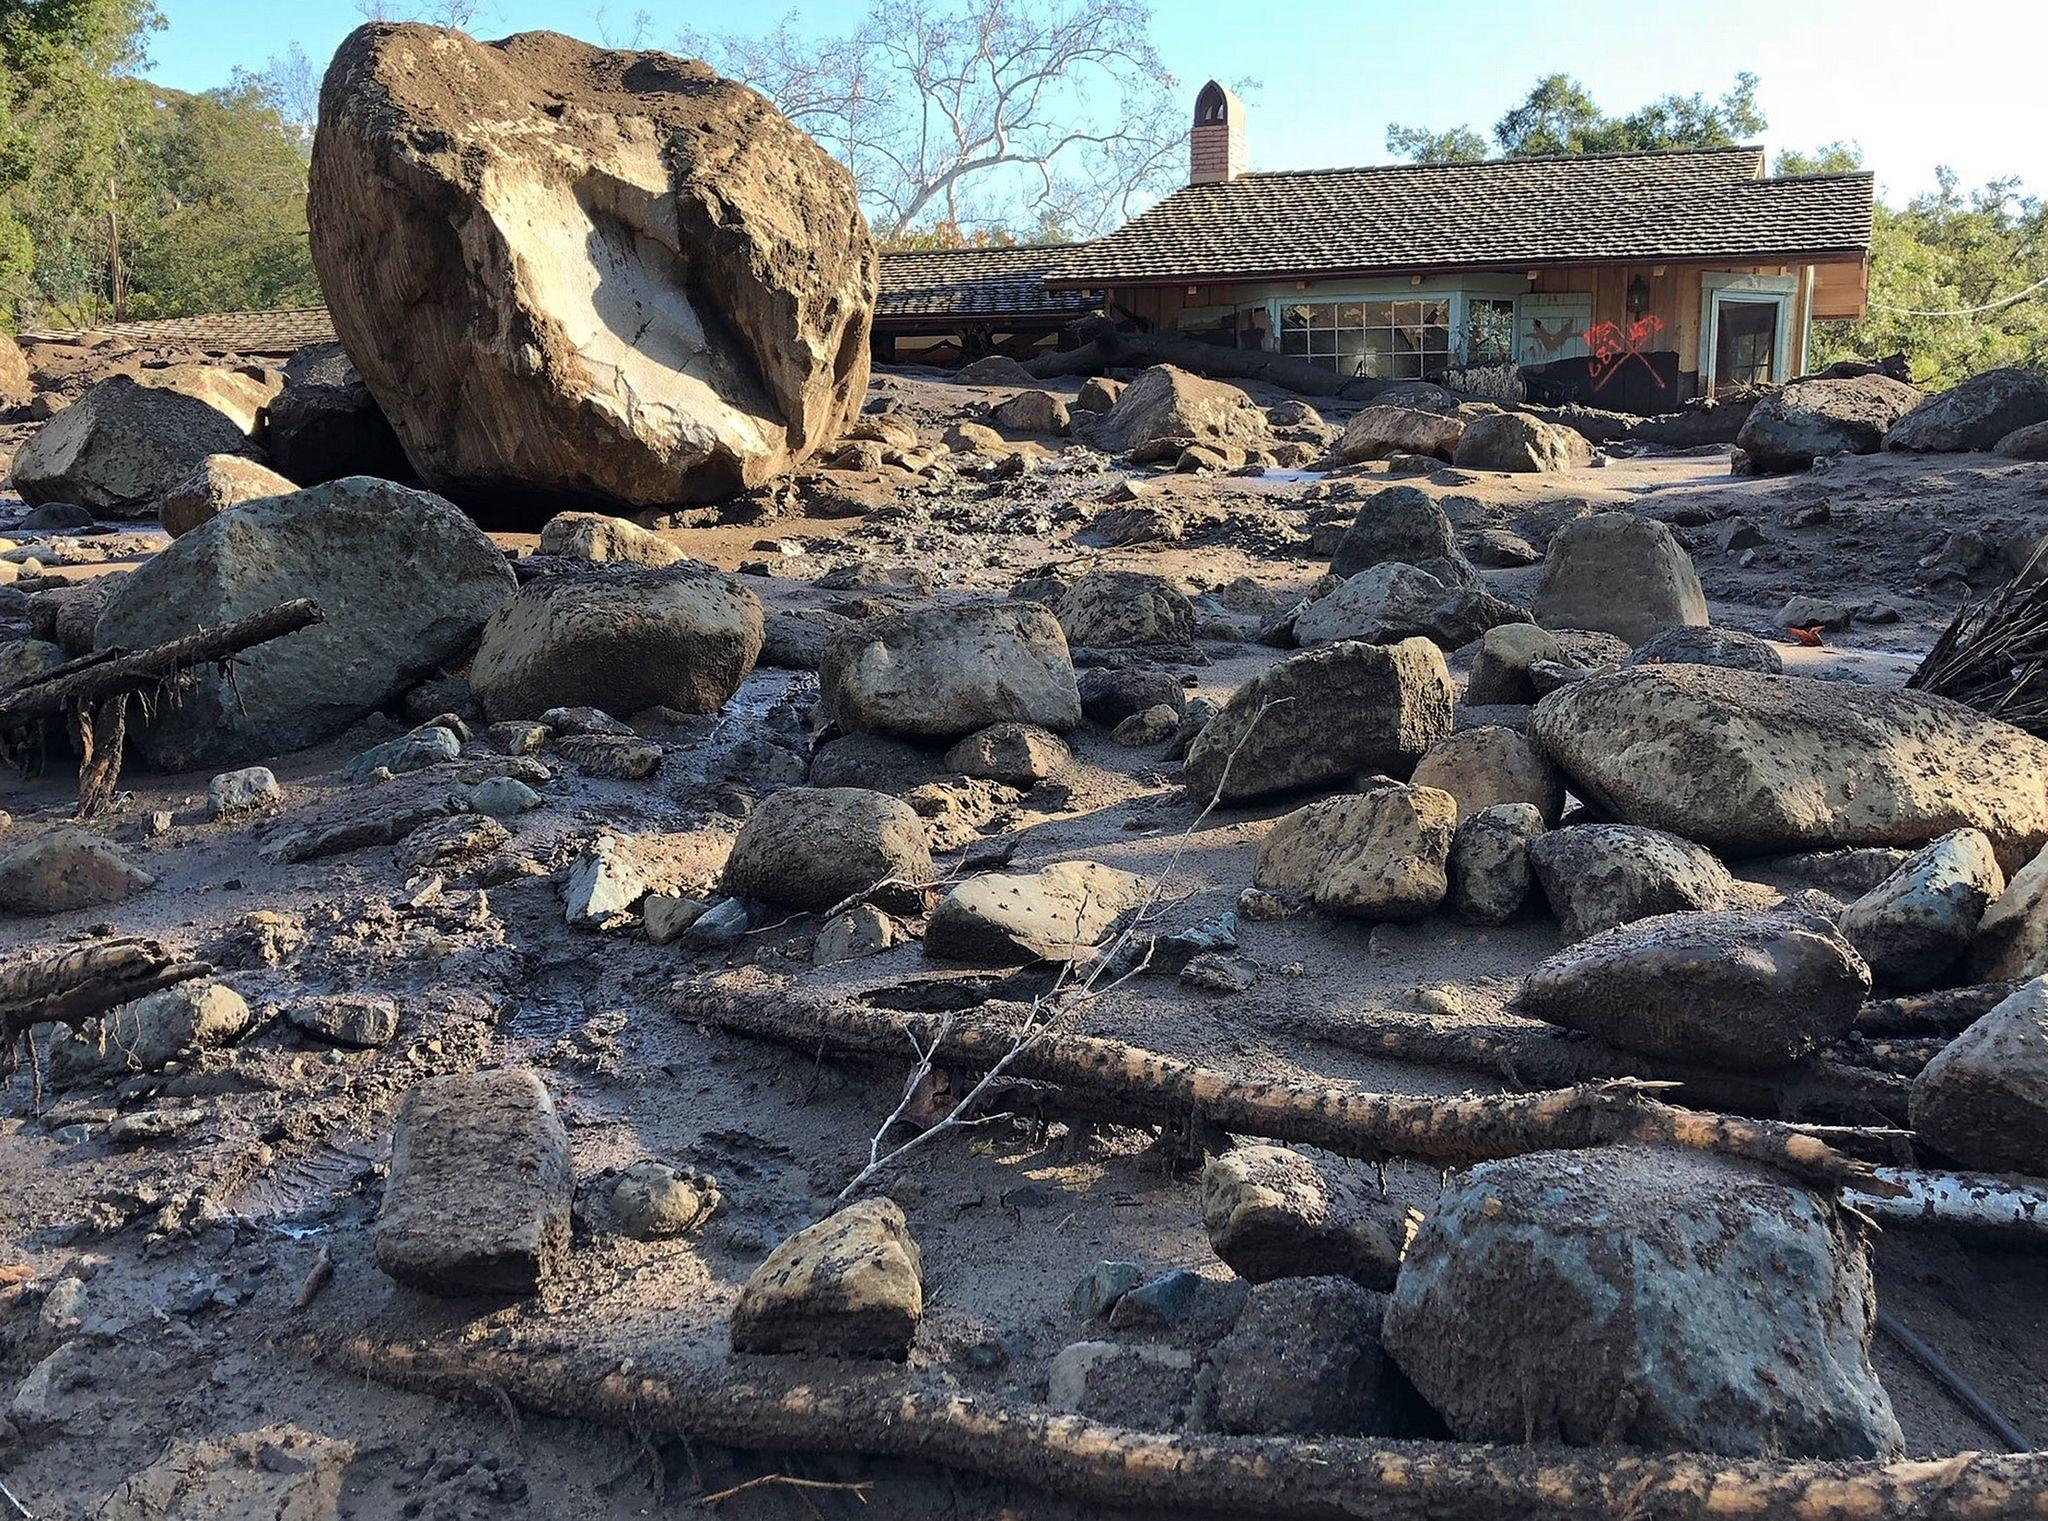 Boulders, logs and a carpet of mud in front of a house along San Ysidro Creek near East Valley Road in Montecito. (Mike Eliason / Santa Barbara County Fire Department)